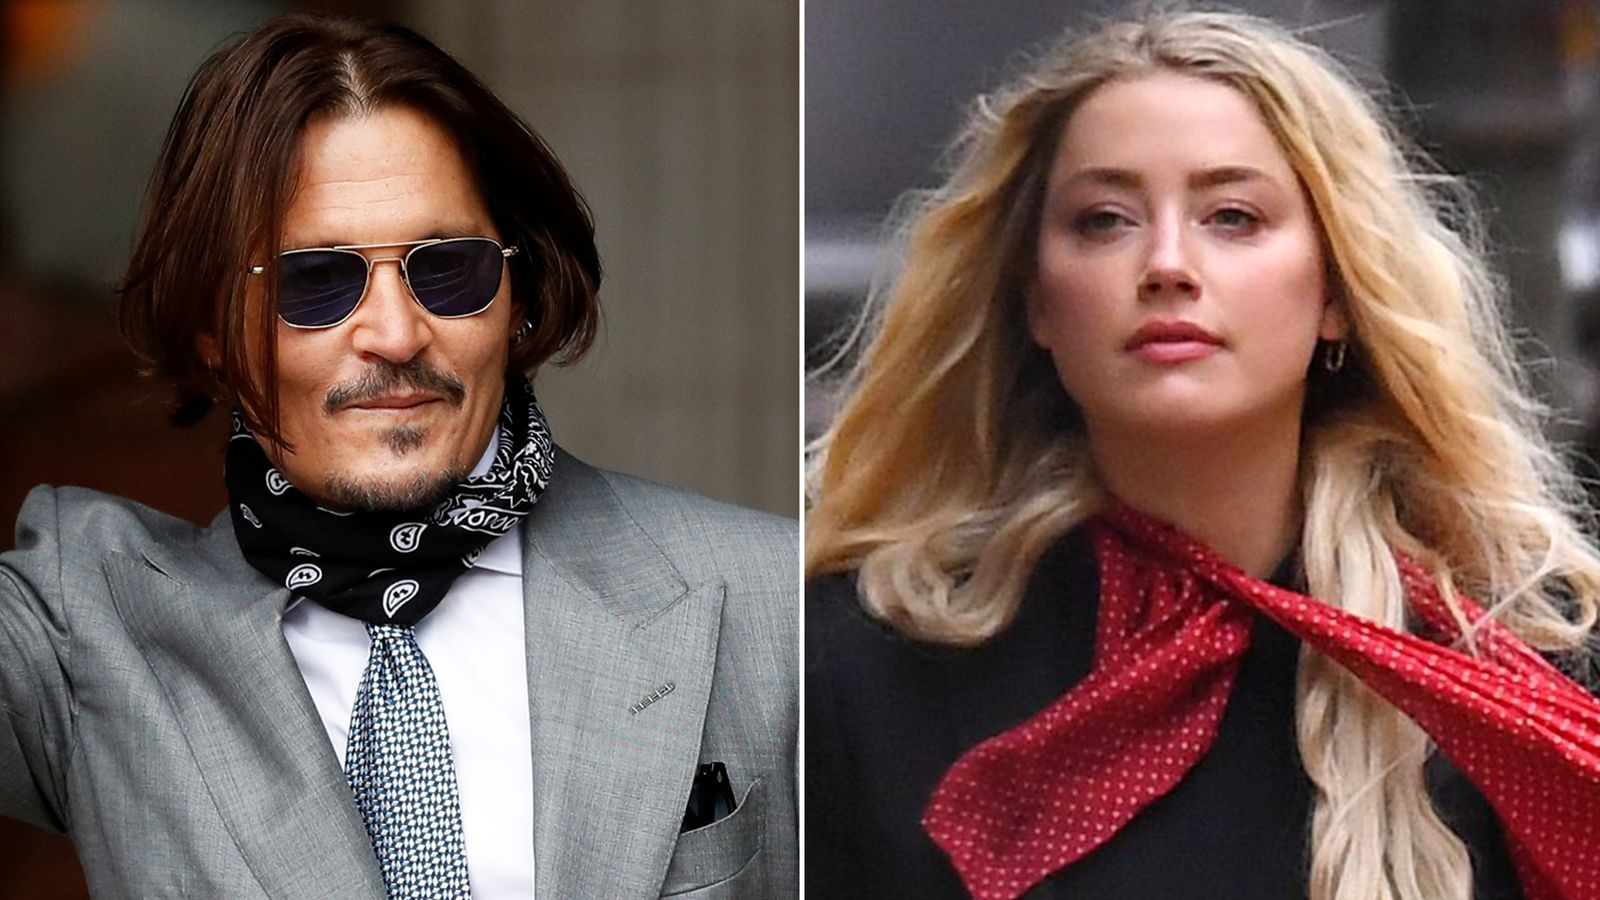 Johnny Depp Accuses Amber Heard Of Lying About Donating Full 7m Divorce Settlement Ents Arts News Sky News